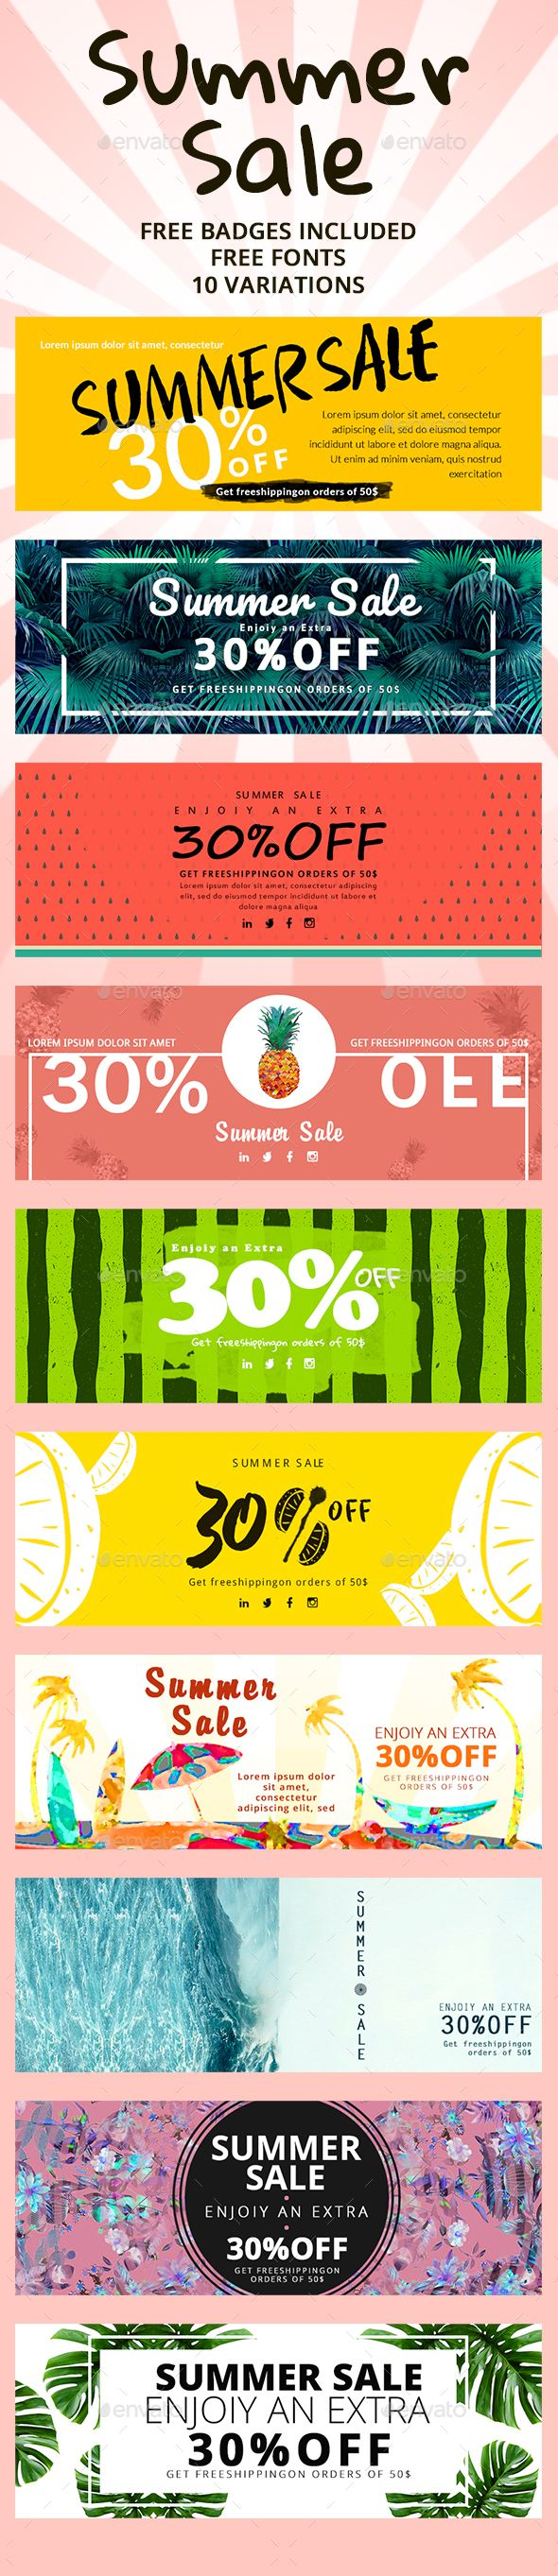 Sale Summer Banners — Photoshop PSD #summer #banner set • Available here → https://graphicriver.net/item/sale-summer-banners/20312175?ref=pxcr